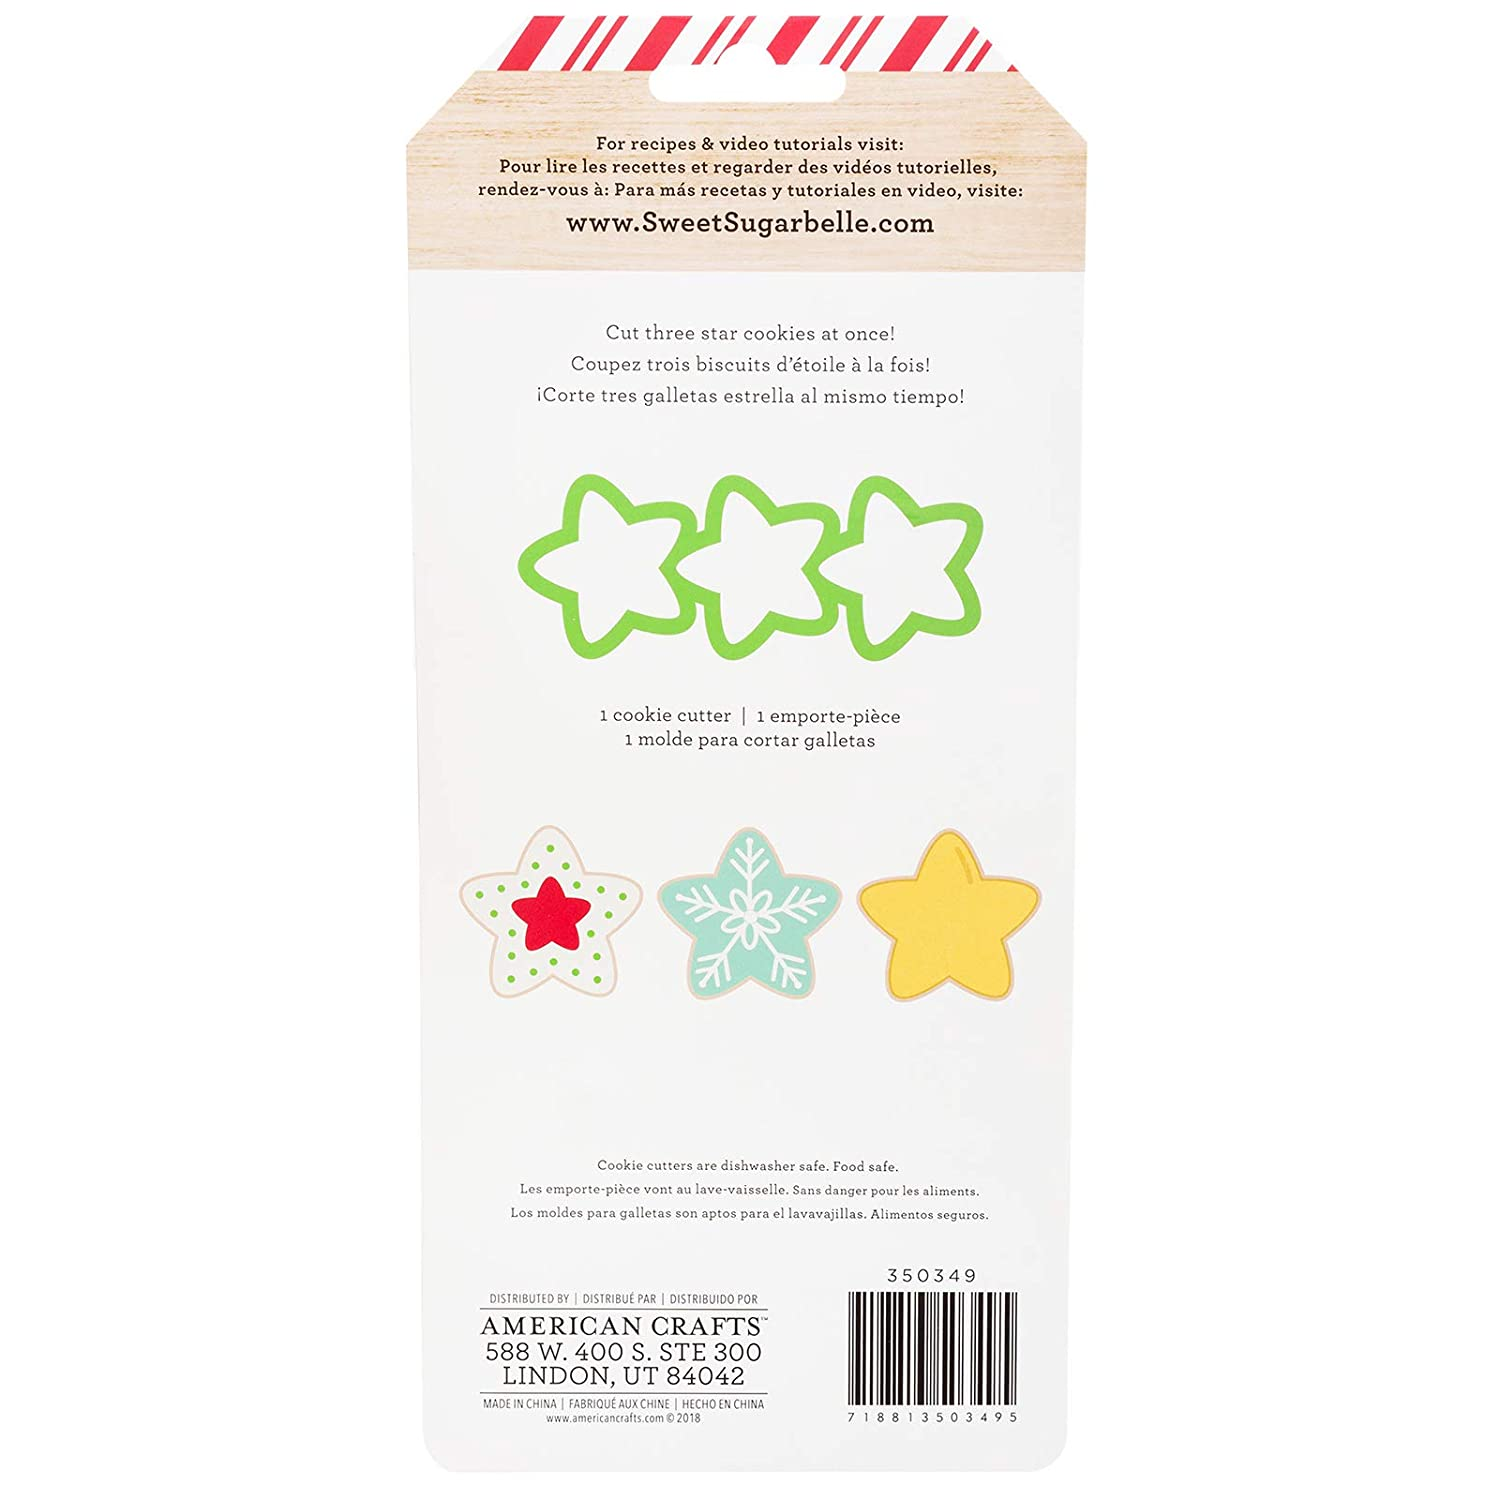 Amazon.com: Sweet Sugarbelle 350349 Star Mini Cookie Cutter Mutli: Arts, Crafts & Sewing